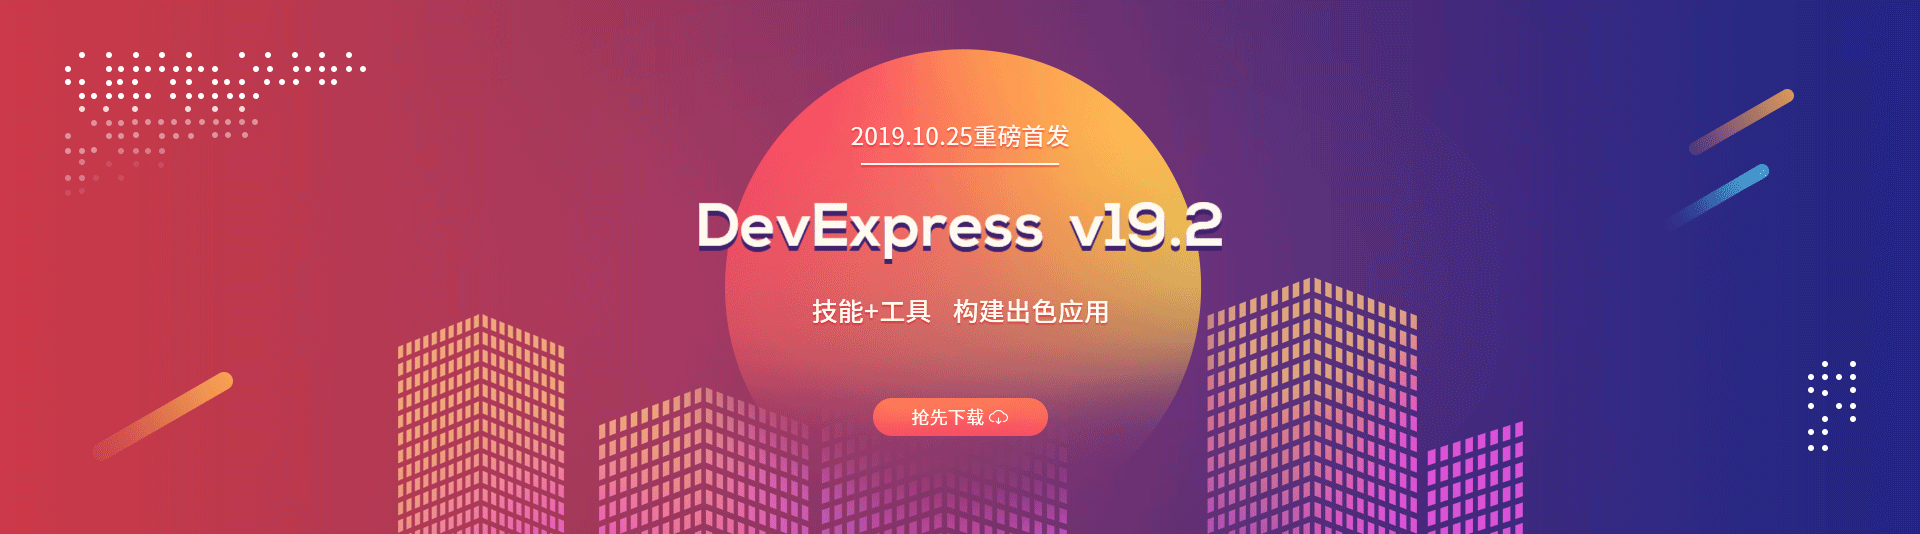 DevExpress v19.2全新发布